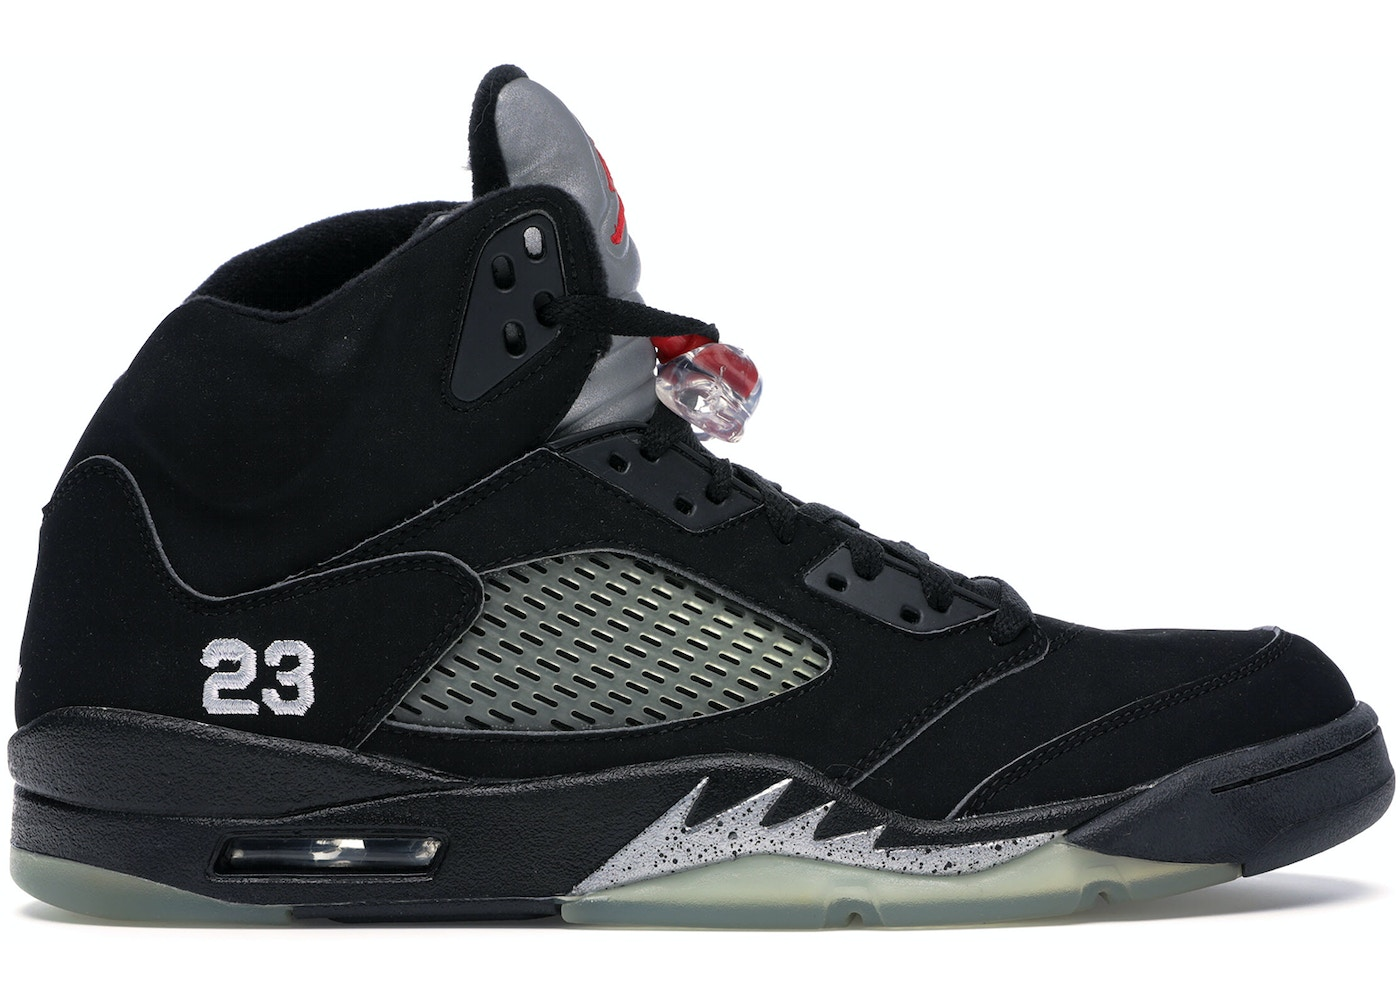 50e8507c1ab80c Jordan 5 Retro Black Metallic (2007) - 136027-004